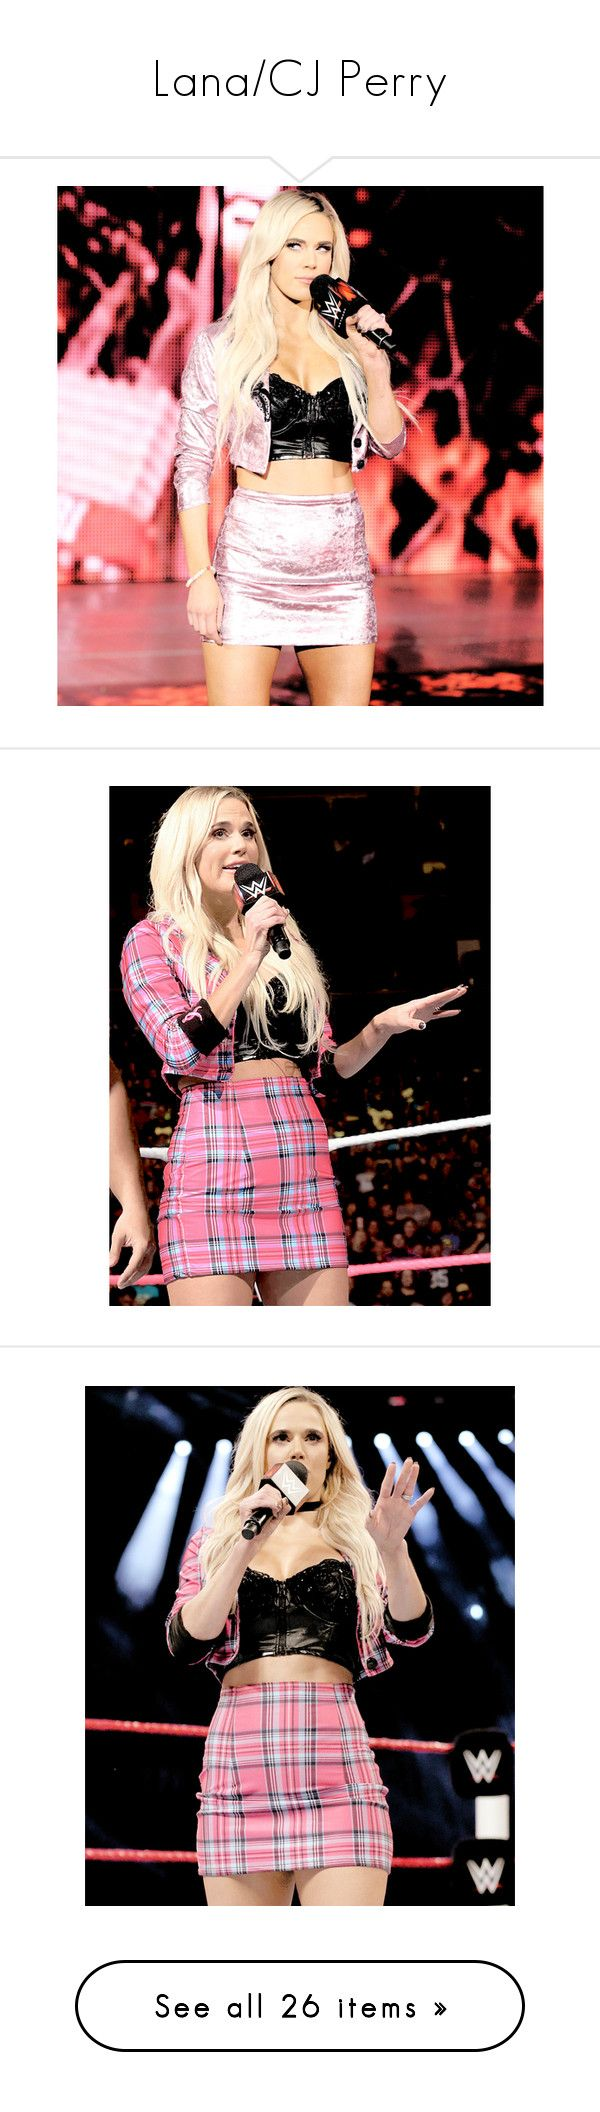 """""""Lana/CJ Perry"""" by amysykes-697 ❤ liked on Polyvore featuring wwe, shoes, pumps, lana and wwe diva"""